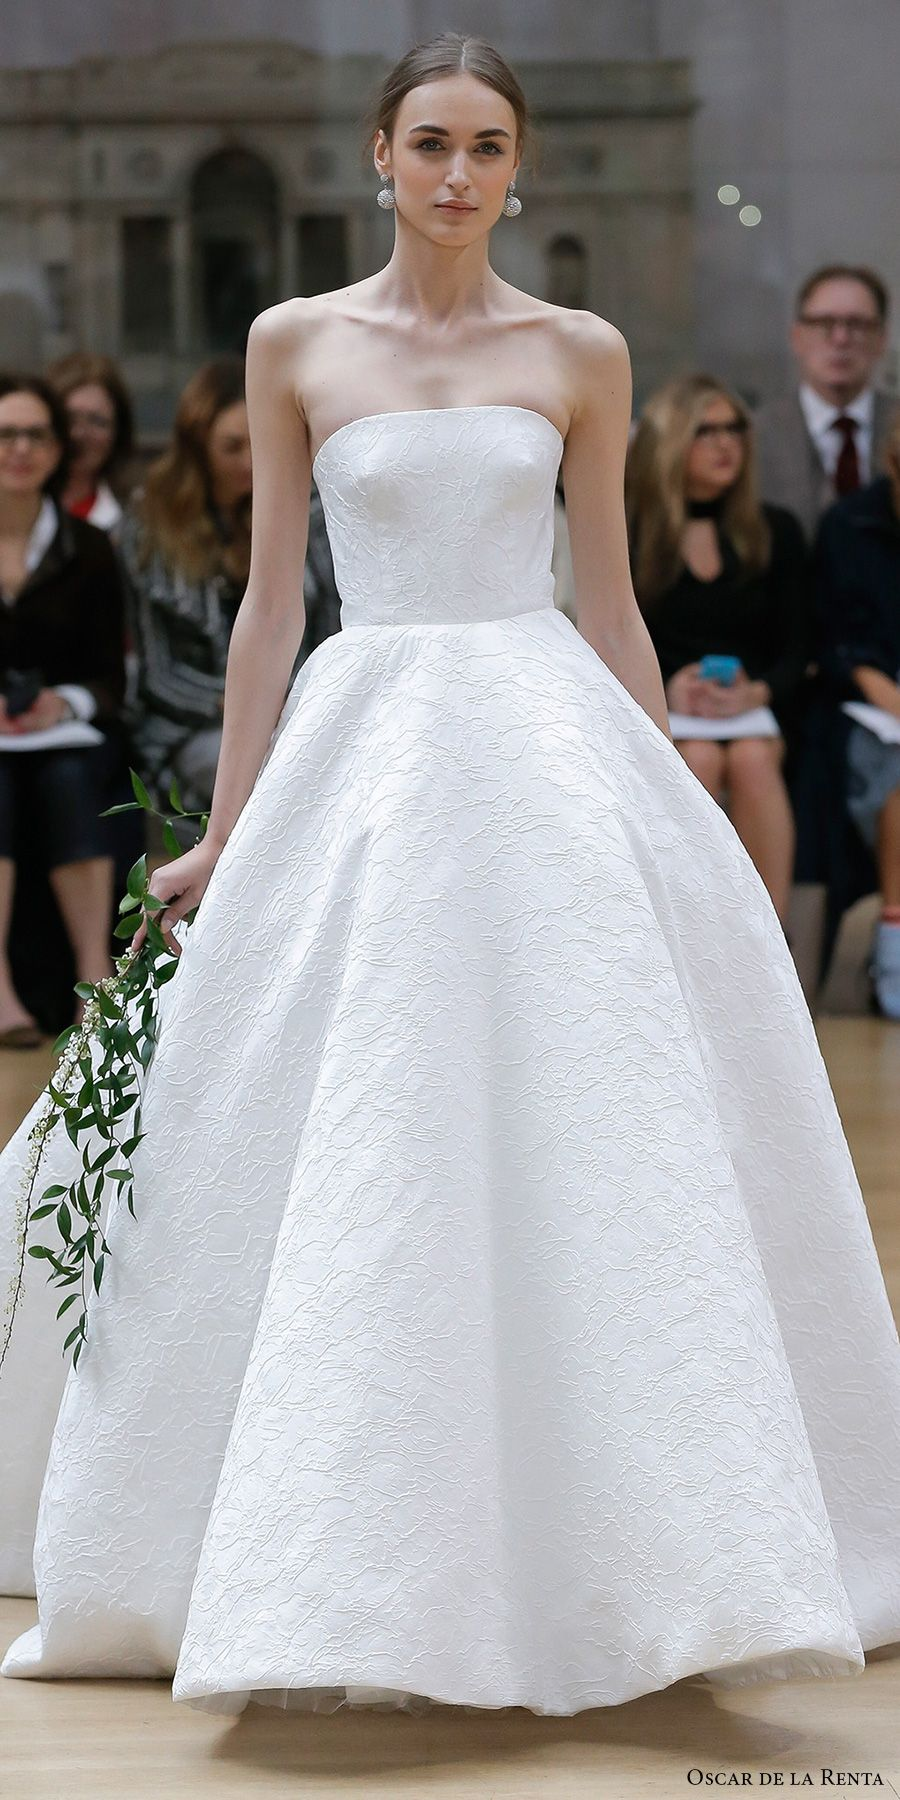 EXCLUSIVE: Inside the Atelier at Oscar de la Renta with Creative Director Peter Copping